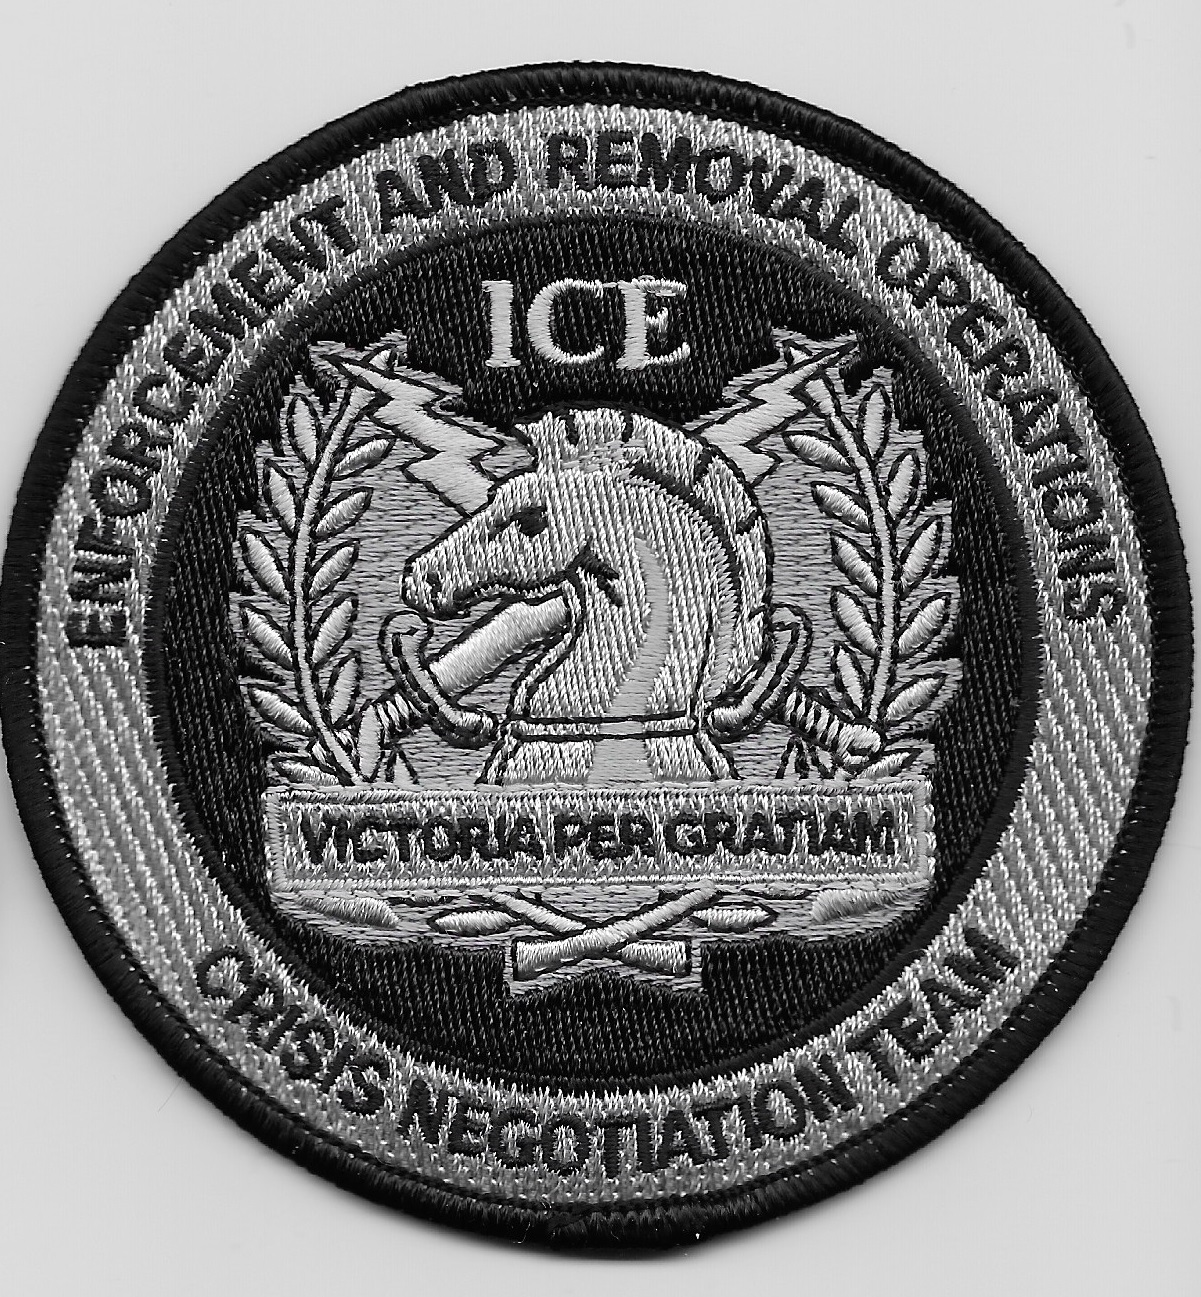 ICE CNT Hostage Negotiator Black & Gray